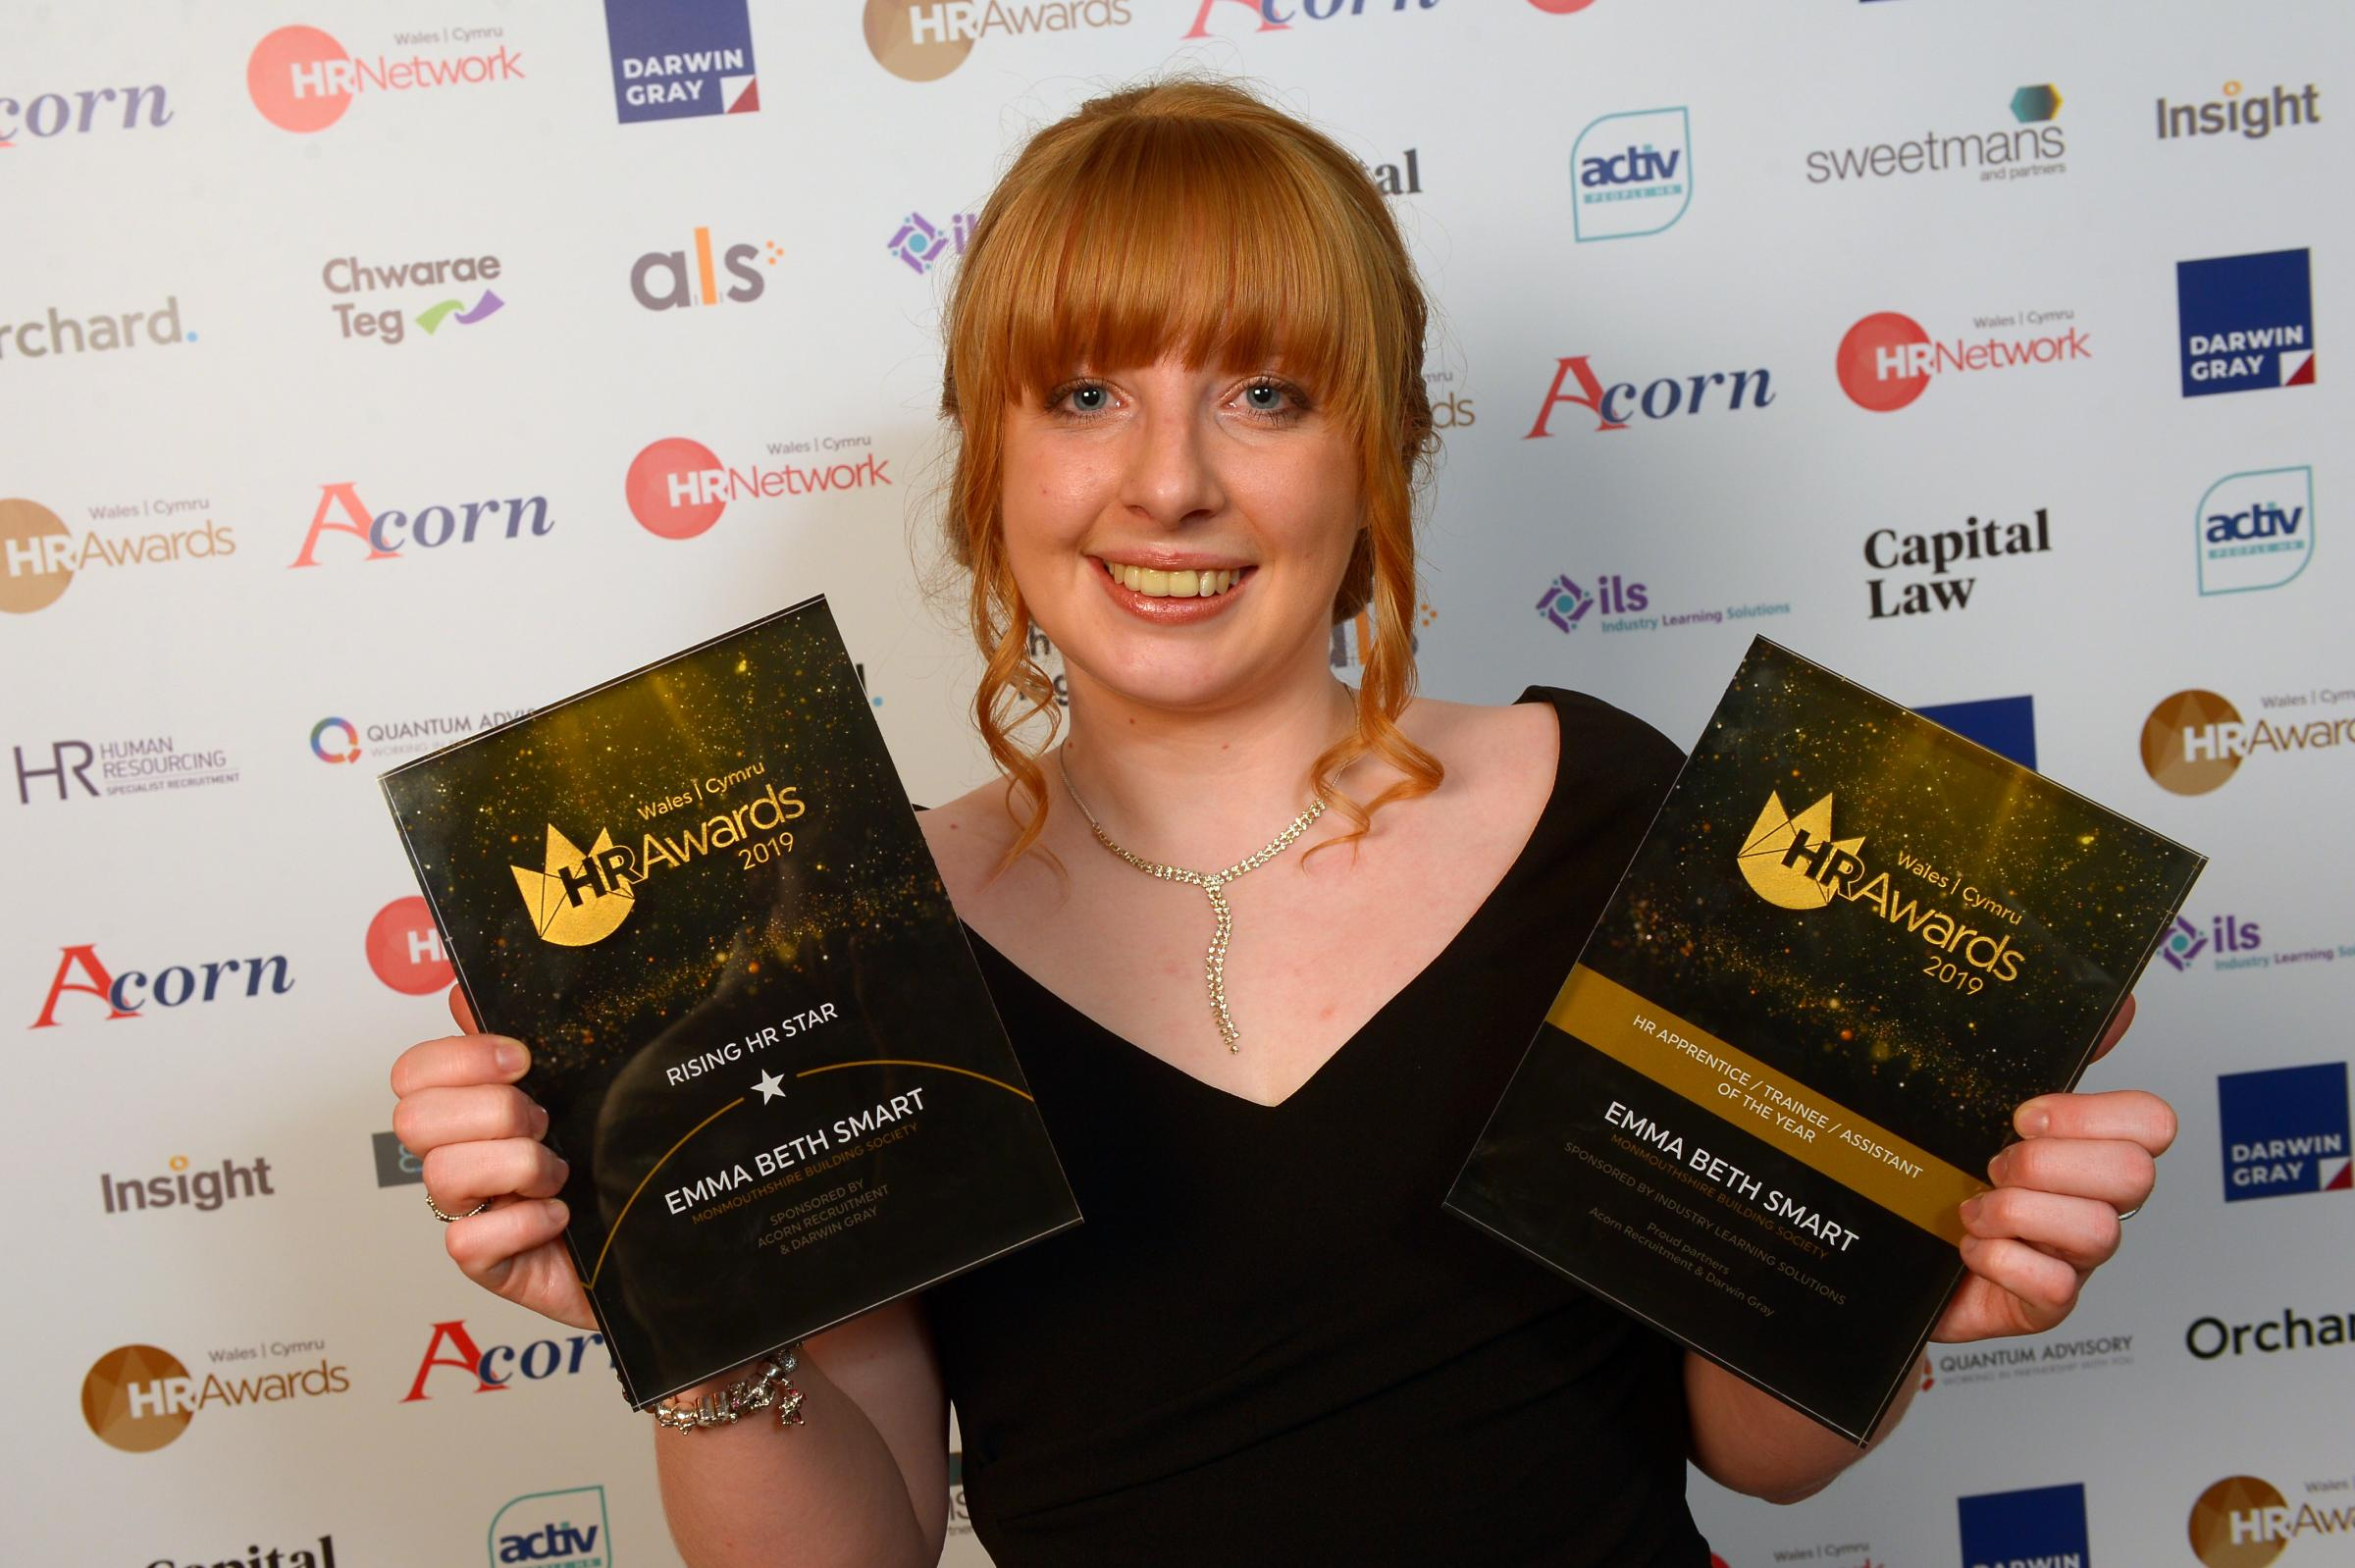 Monmouthshire Building Society's Emma Beth Smart at the 2019 Wales HR Awards